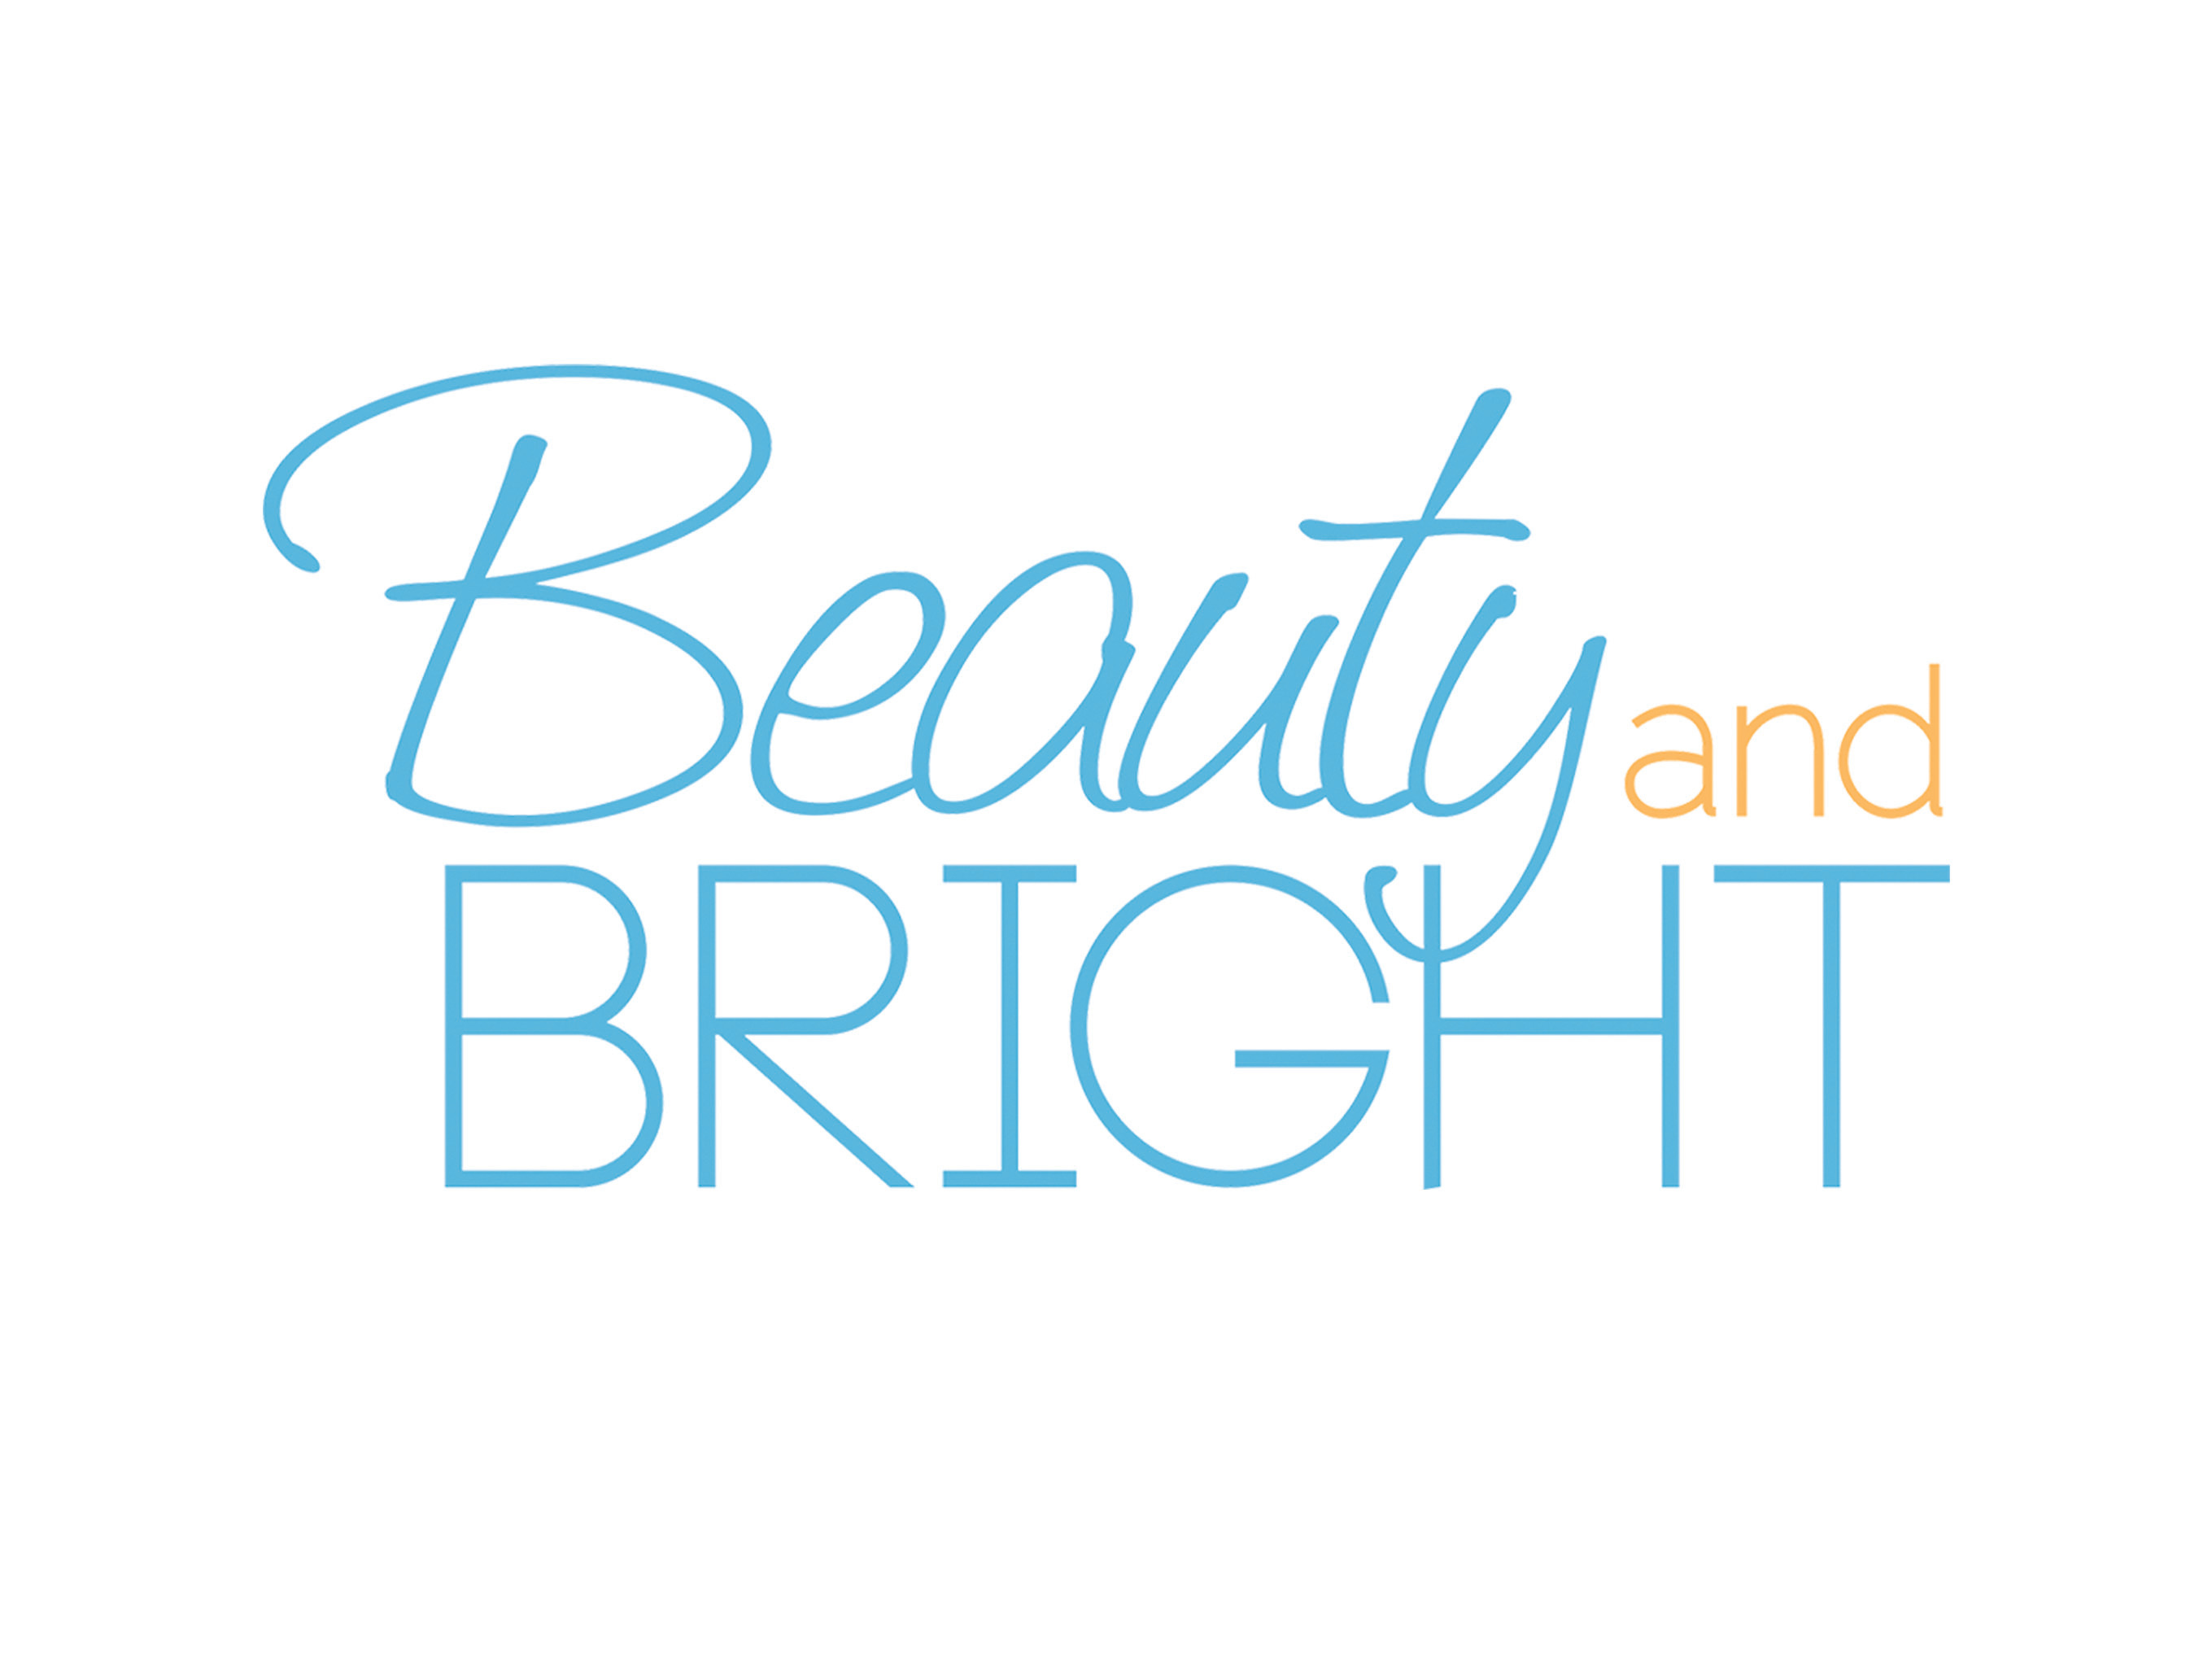 01. BEAUTY AND BRIGHT